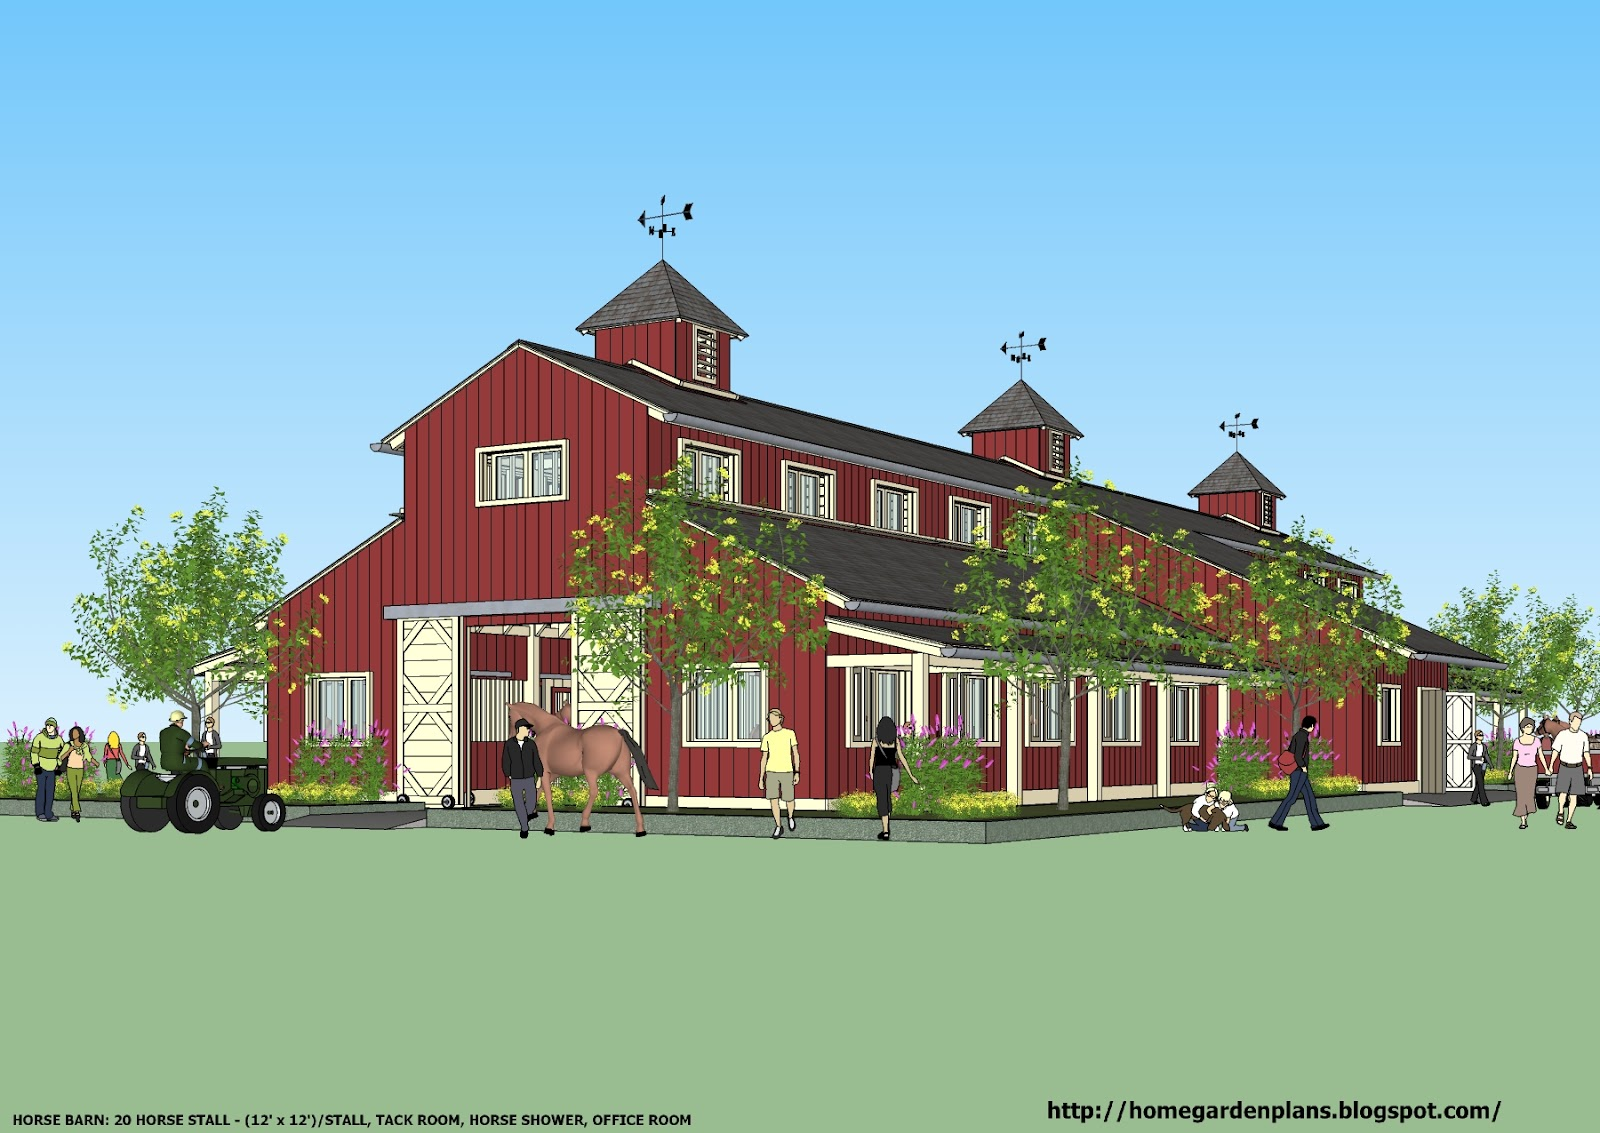 Home Garden Plans News B20h Large Horse Barn Plans For 20 Horse Stall 20 Stall Horse Barn